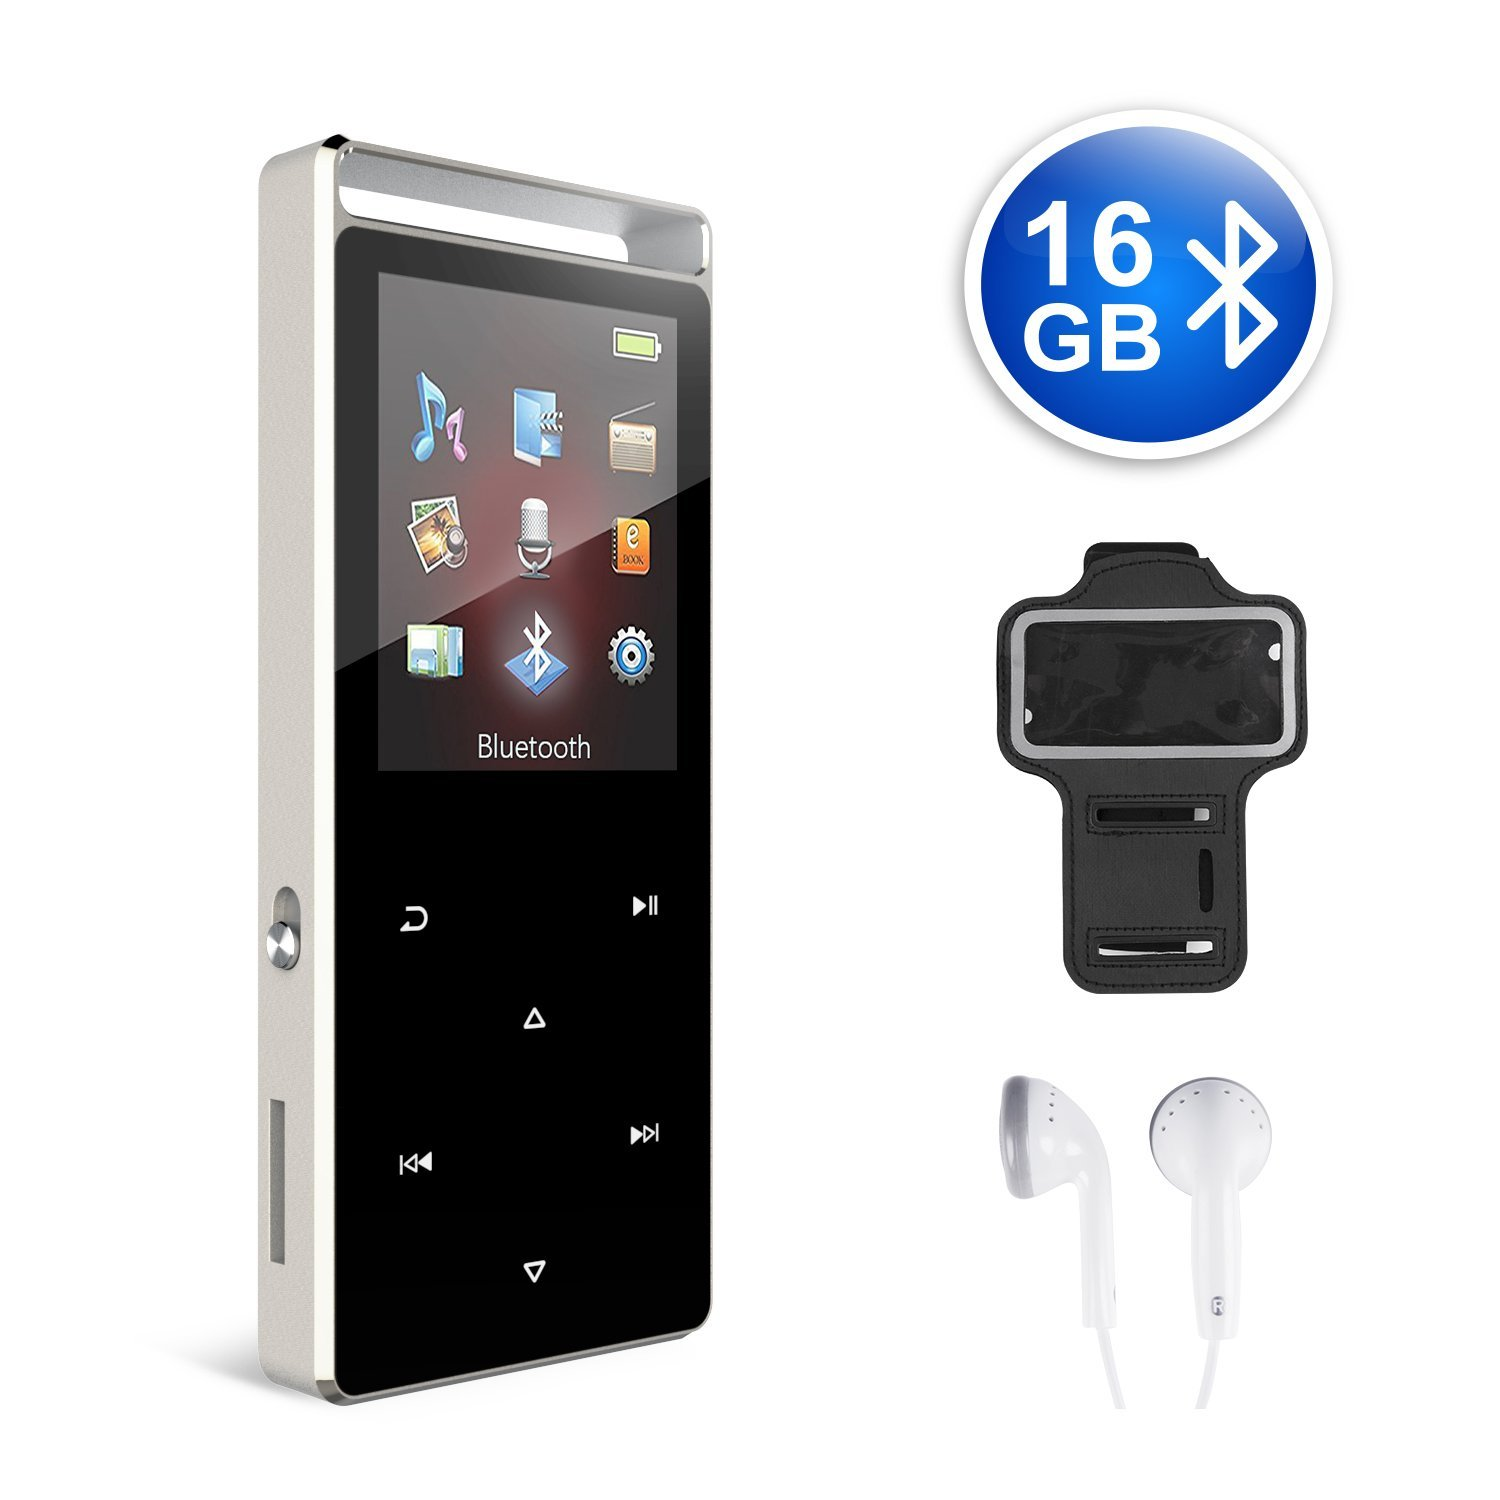 MP3 Player 16GB Bluetooth MP3 Digital Music Player with FM Radio, Voice Rocorder, Pedometer,HIFI Lossless Stereo Sound Metal Sport Player with Armband, Earphone, USB Cable